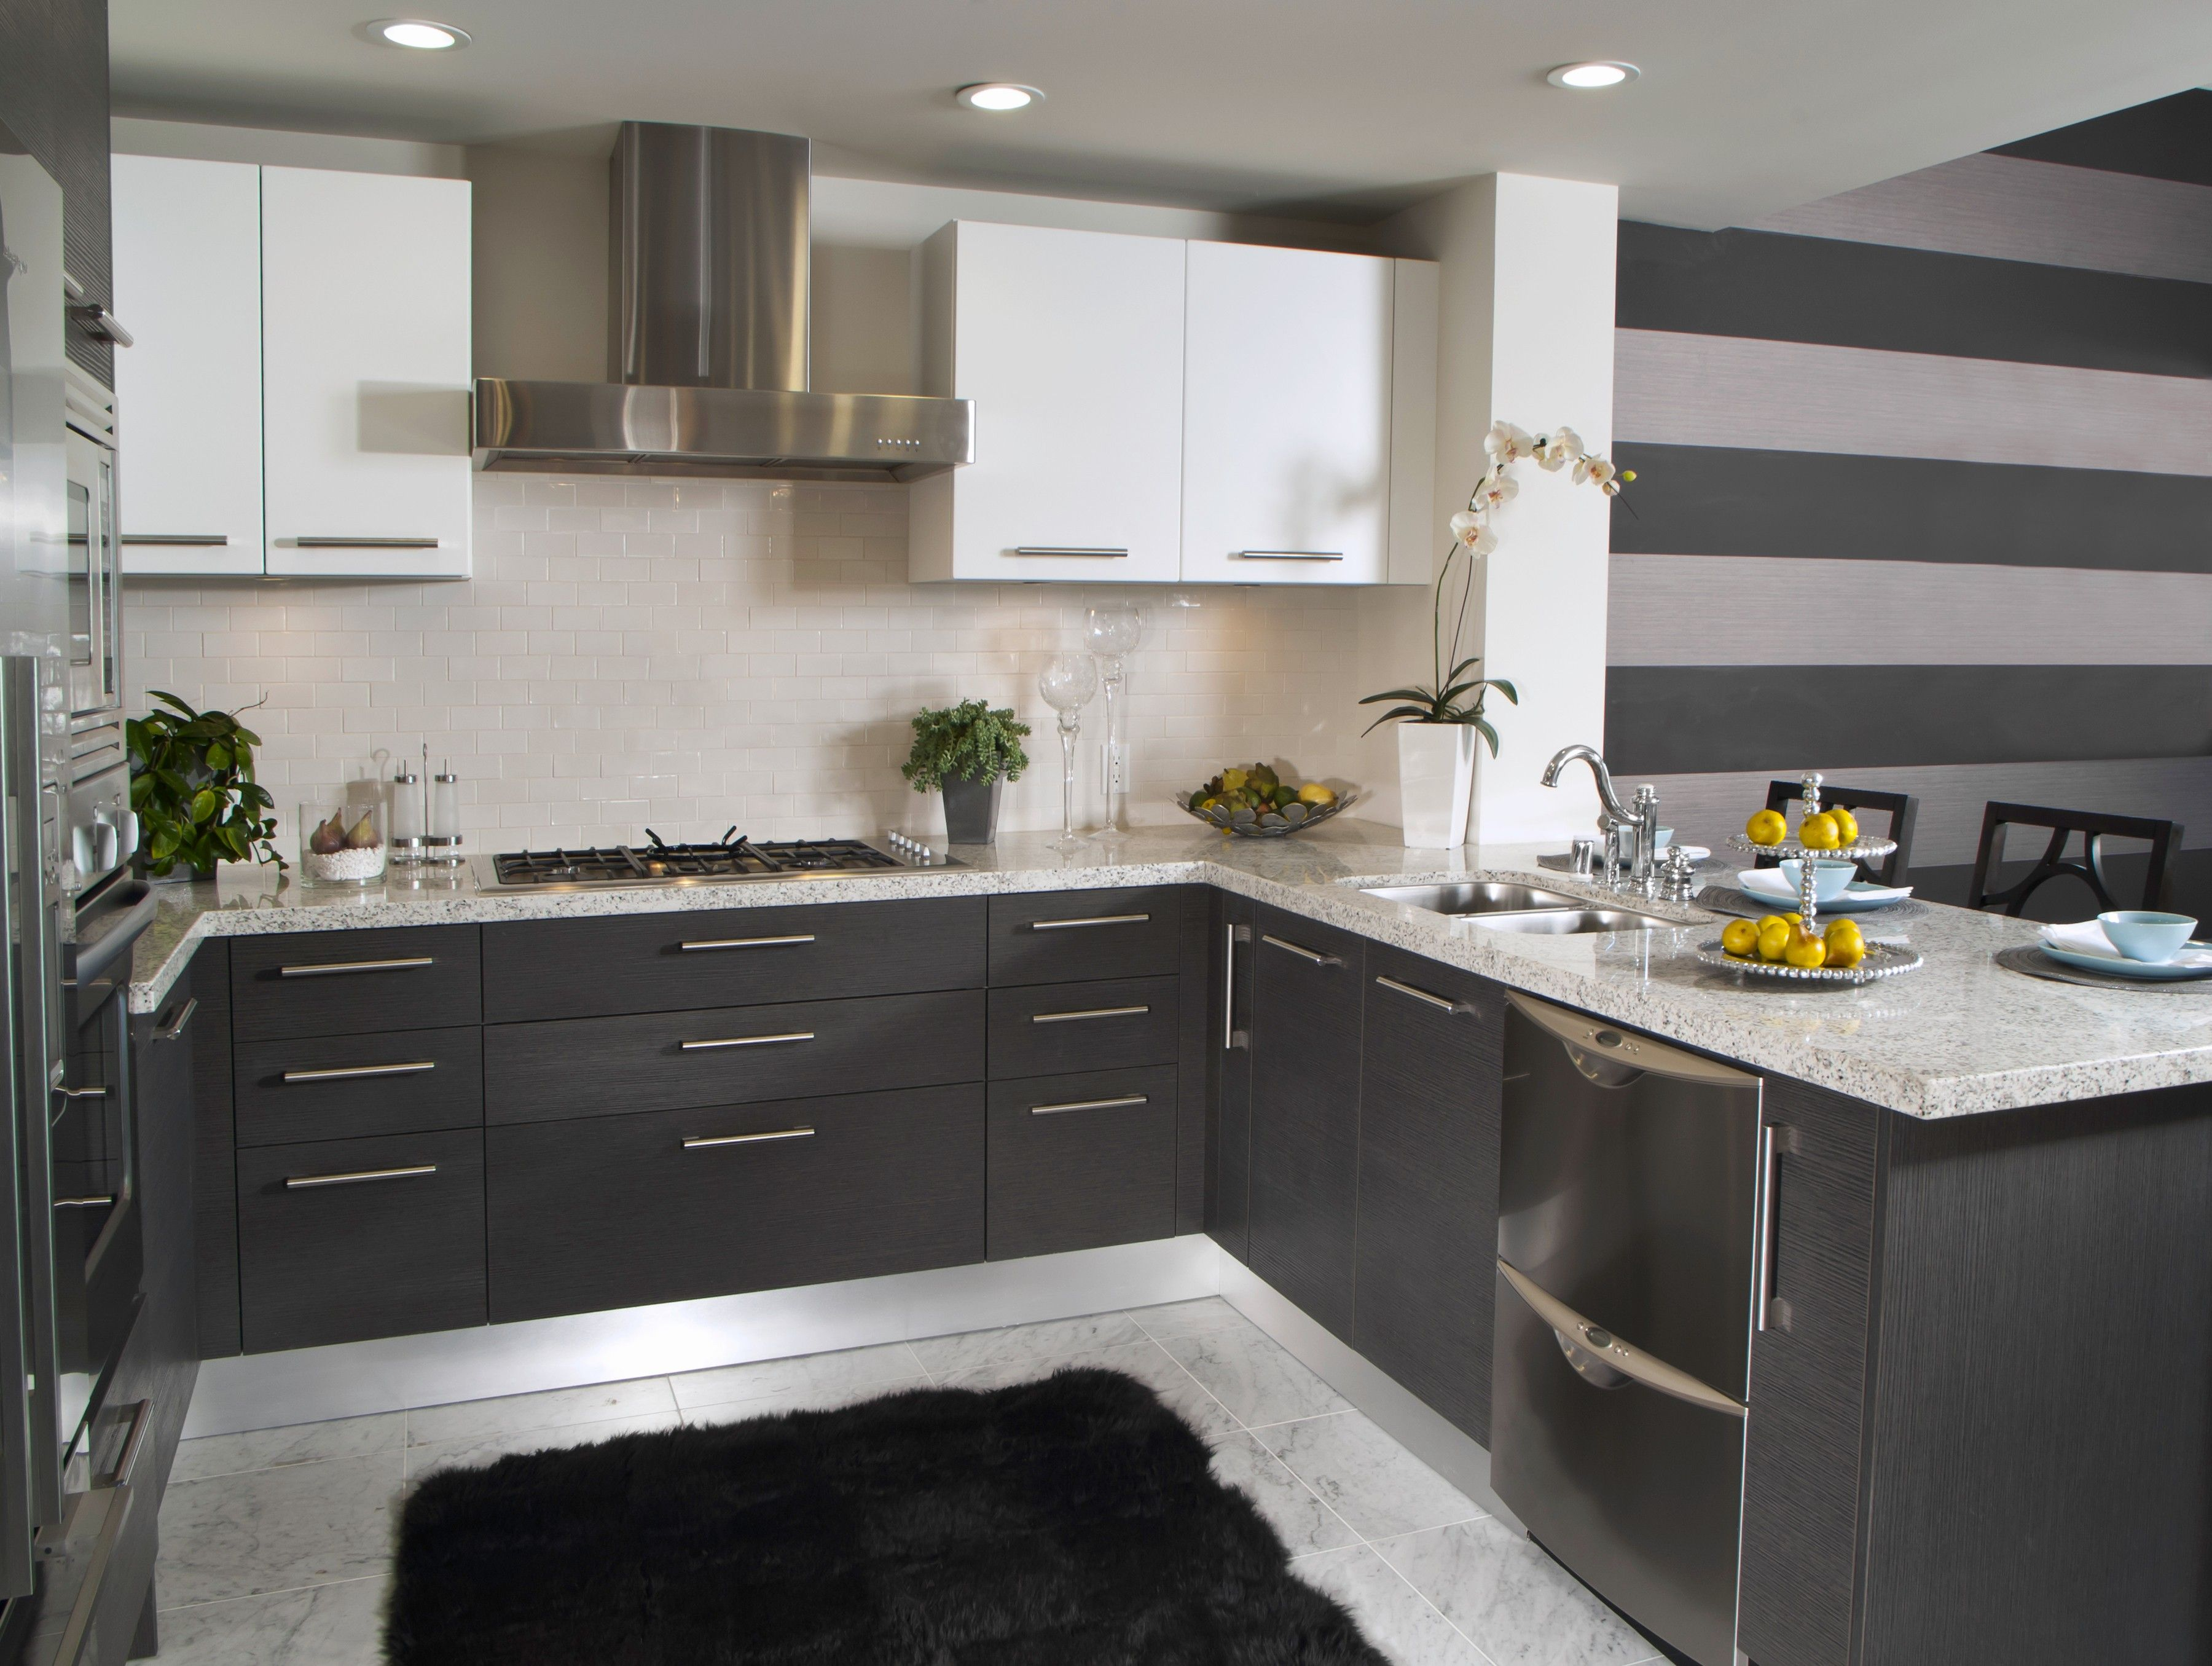 Pin On Ultimate Kitchen Design